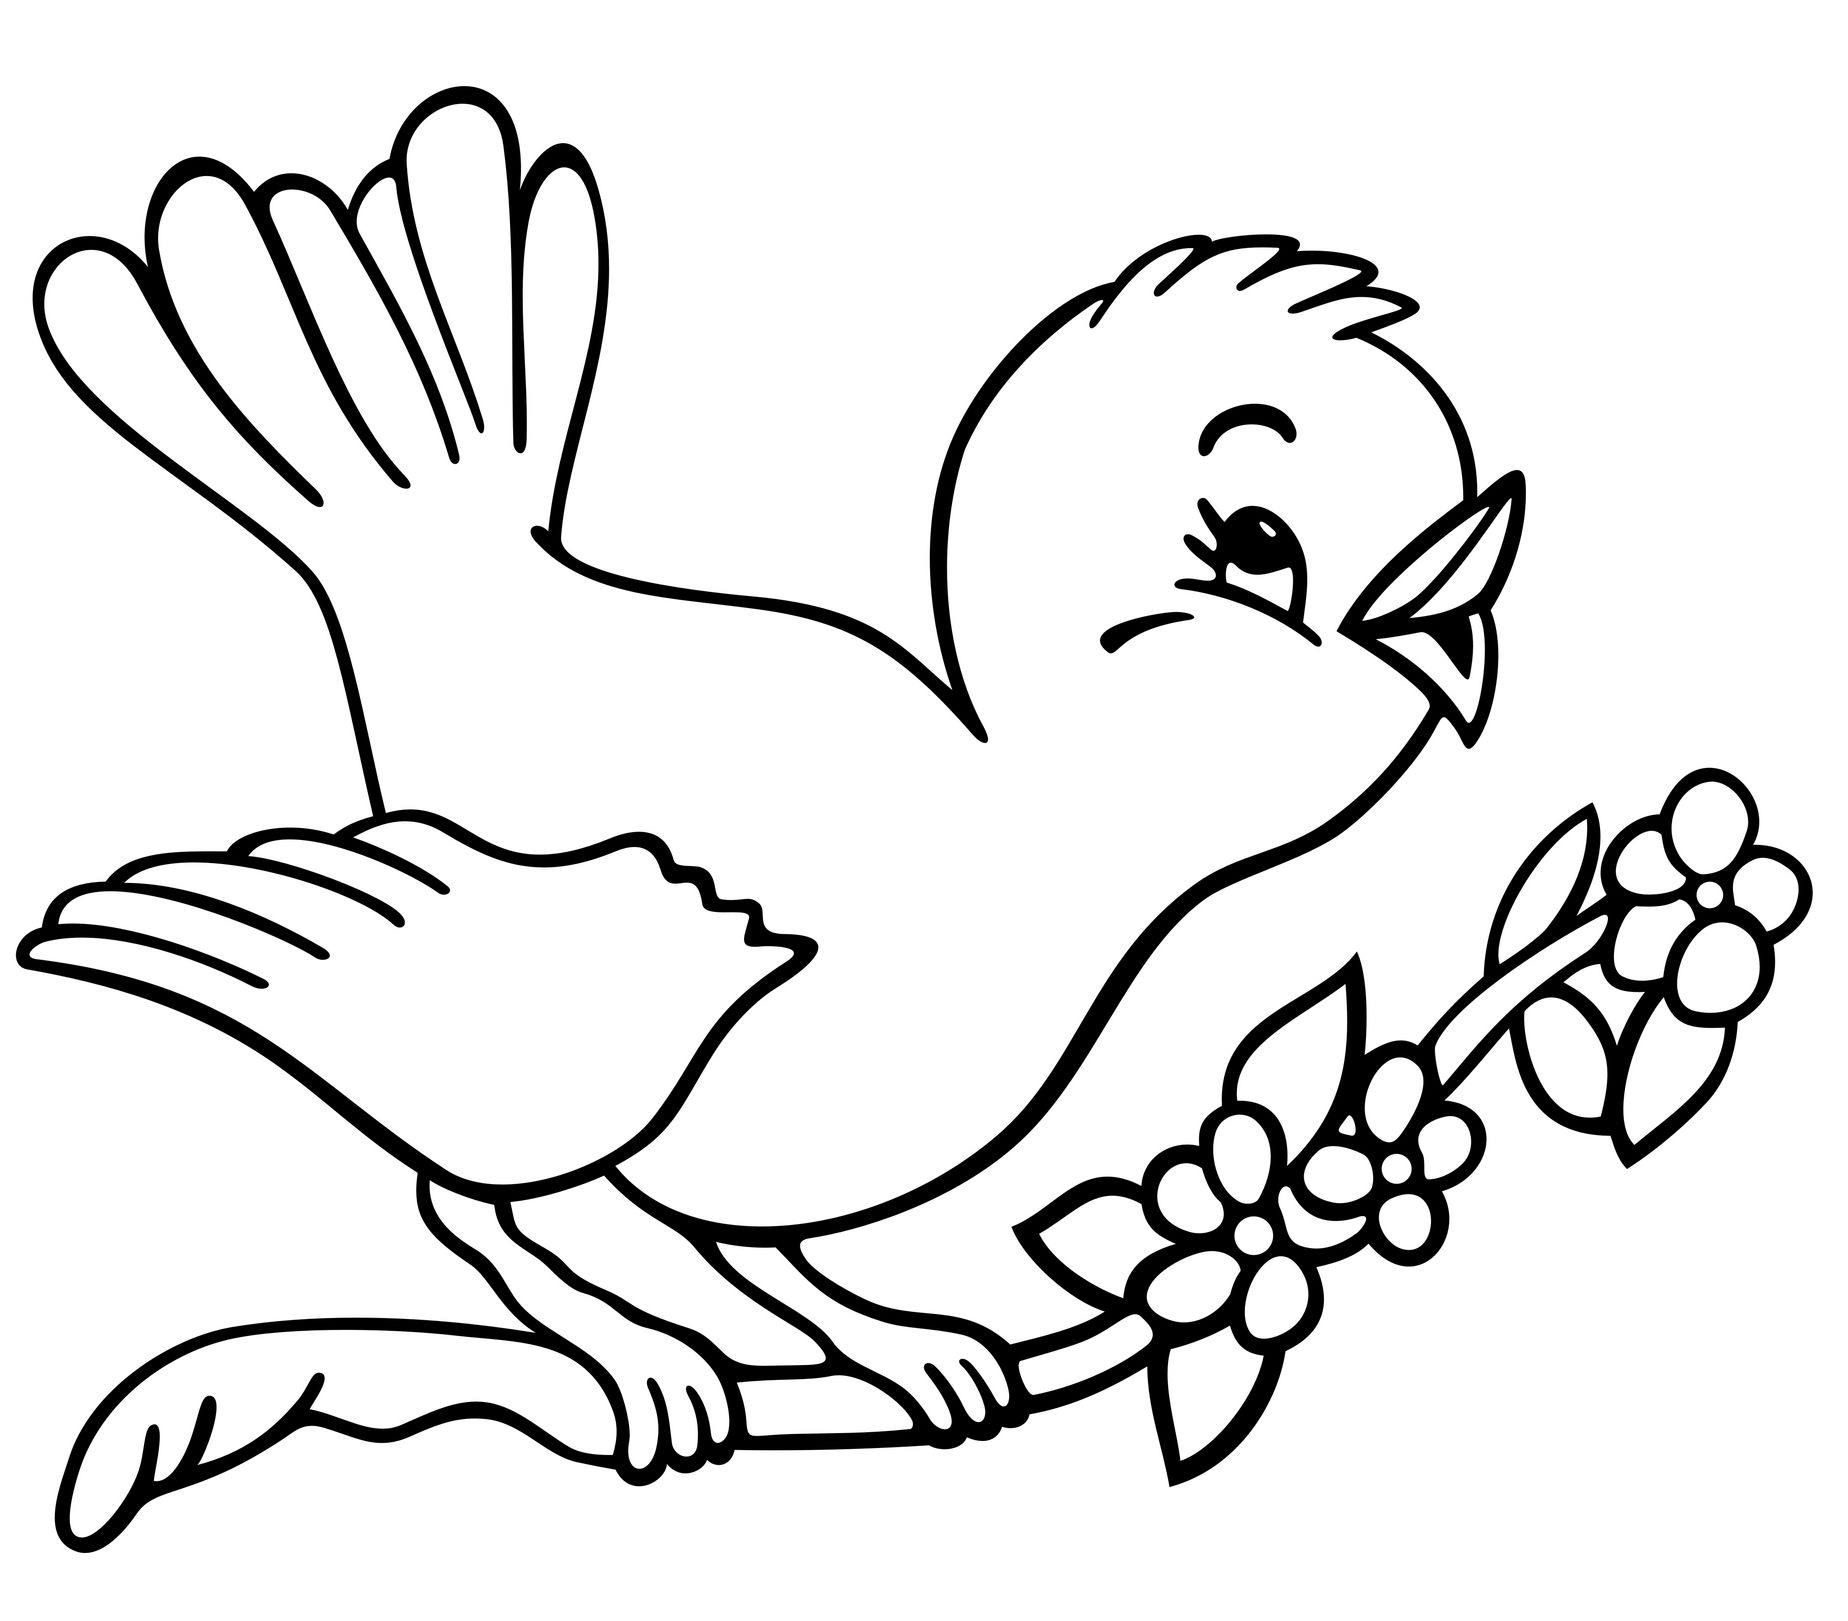 Adult Cute Birds Coloring Page Gallery Images beauty bird coloring pages 40 diy pinterest children and gallery images